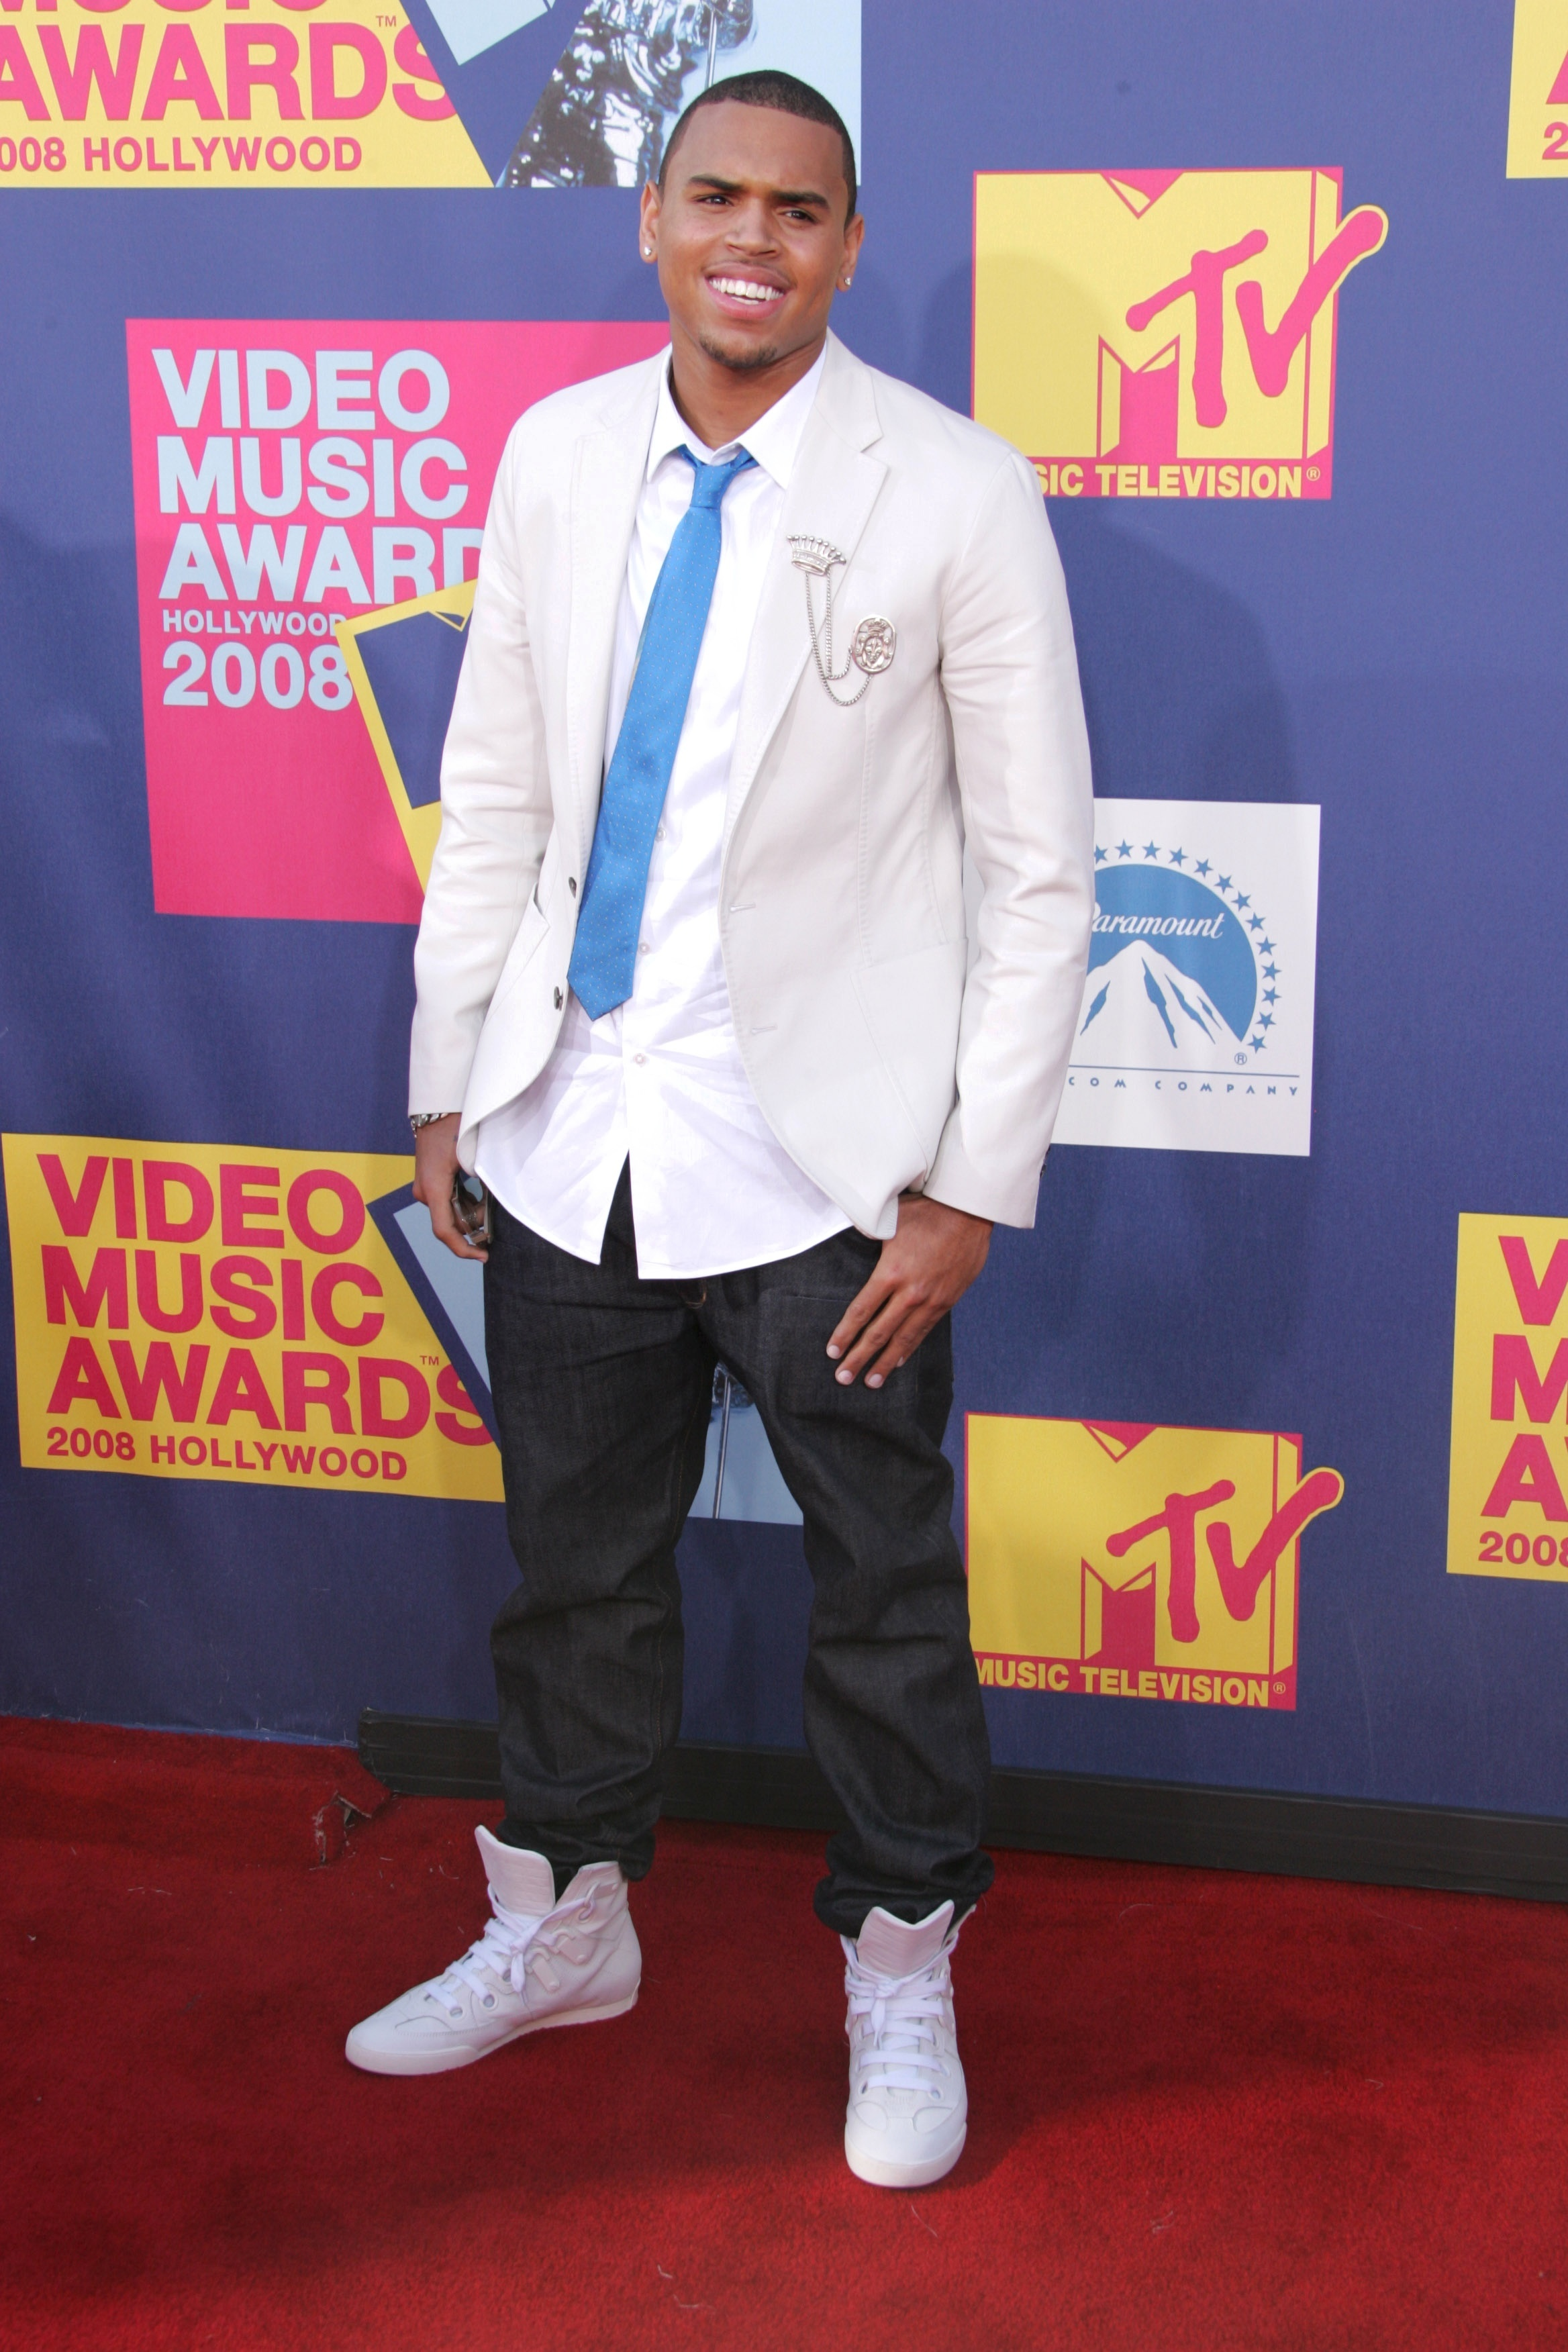 Chris Brown arrives at the MTV Video Music Awards in Los Angeles on Sept. 7, 2008.